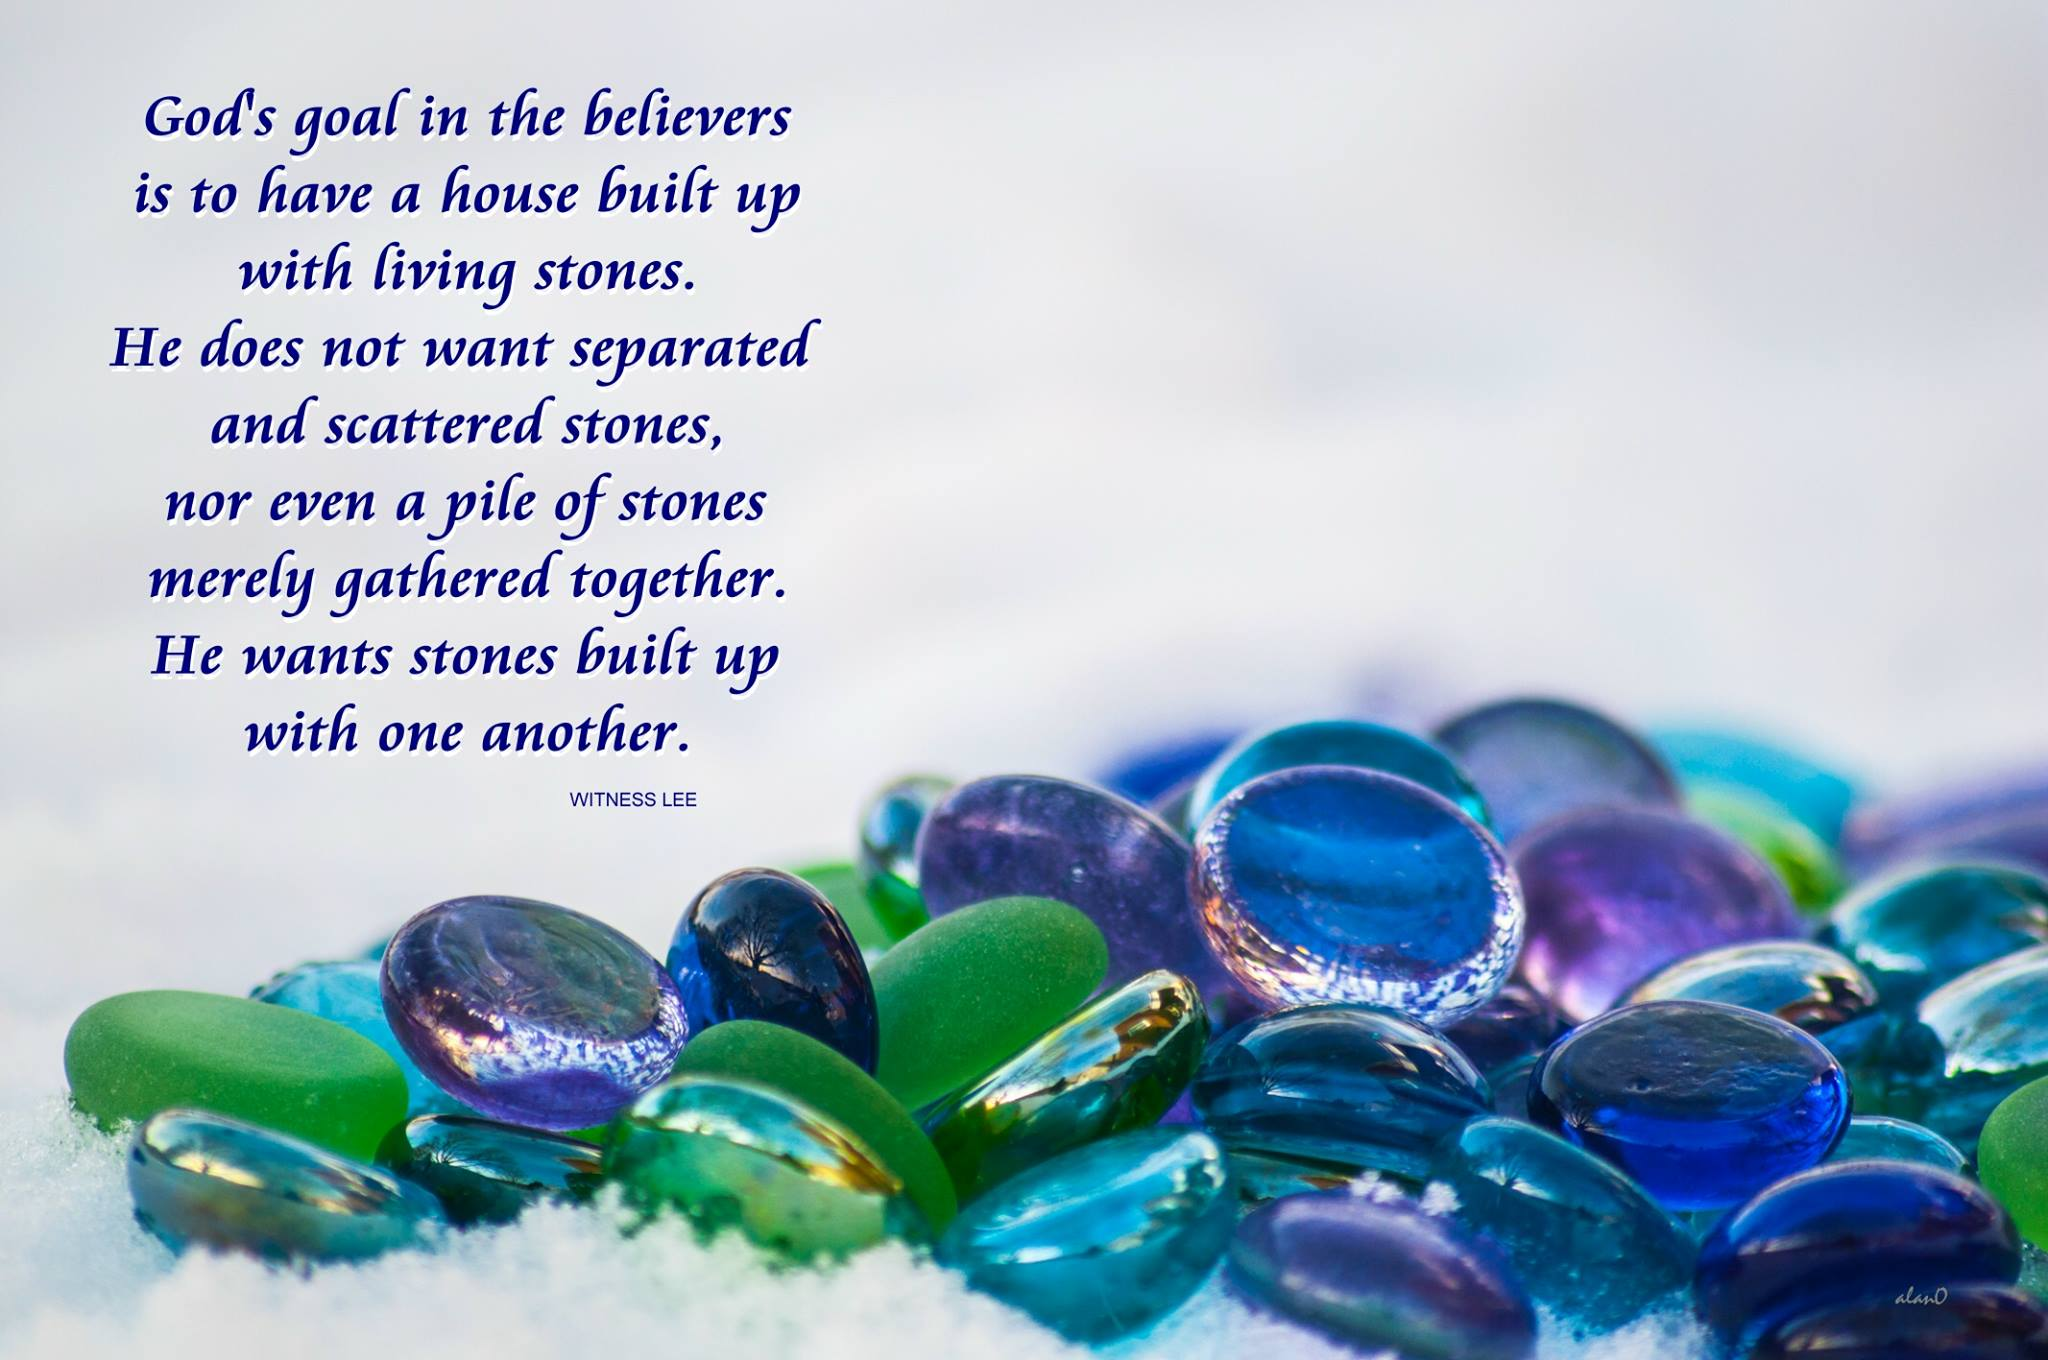 God's goal in the believers is to have a house built up with living stones. He does not want separated and scattered stones, nor even a pile of stones merely gathered together. He wants stones built up with one another (Quote from, Witness Lee).